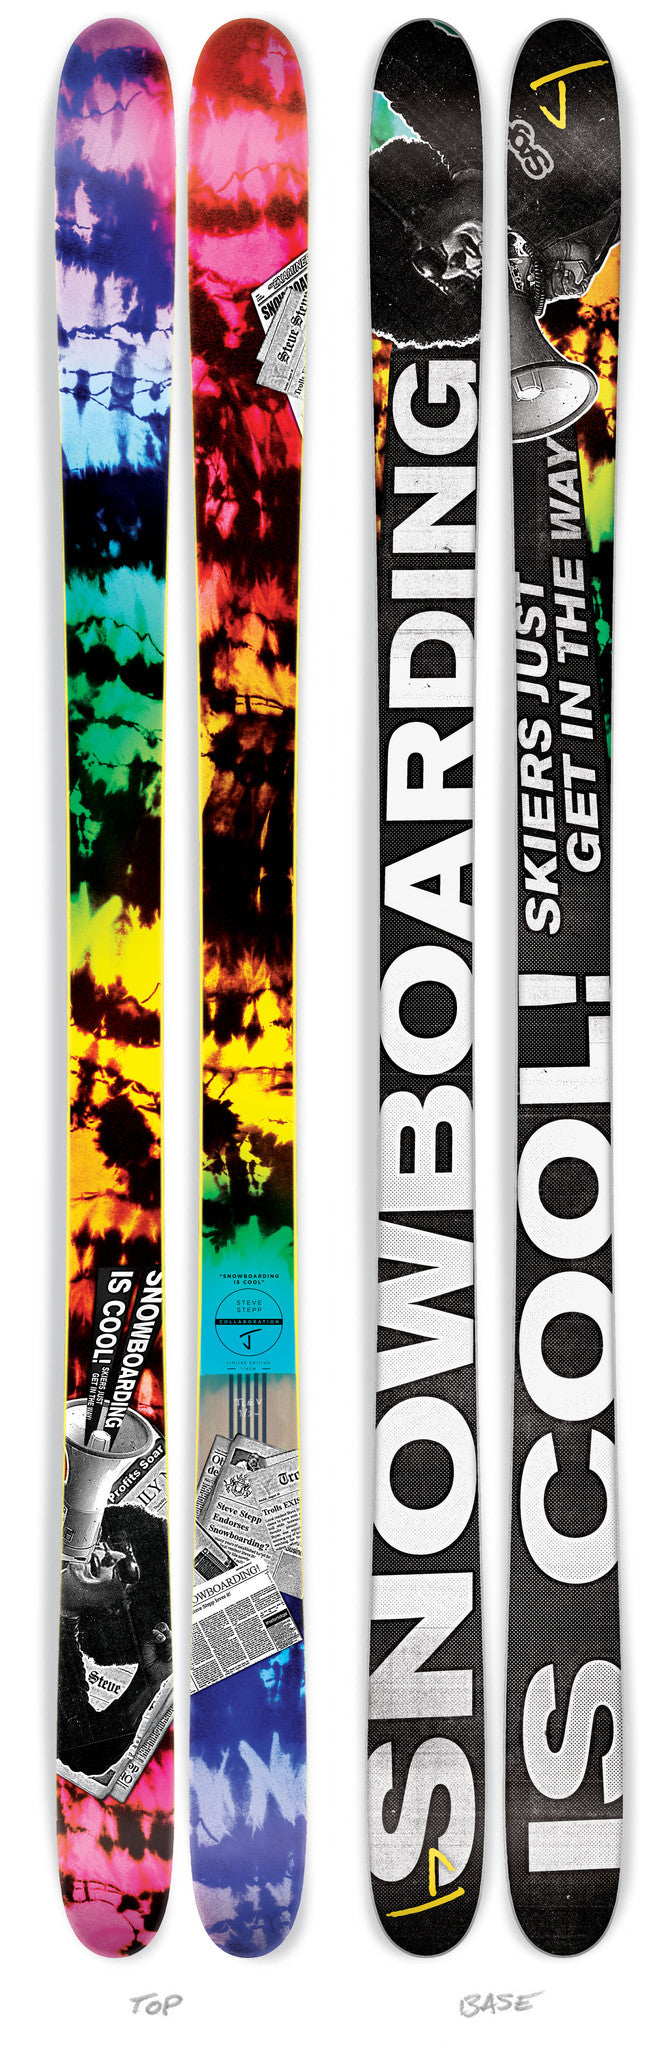 Captains Cabin Salomon The Villain Snowboard in Mixed